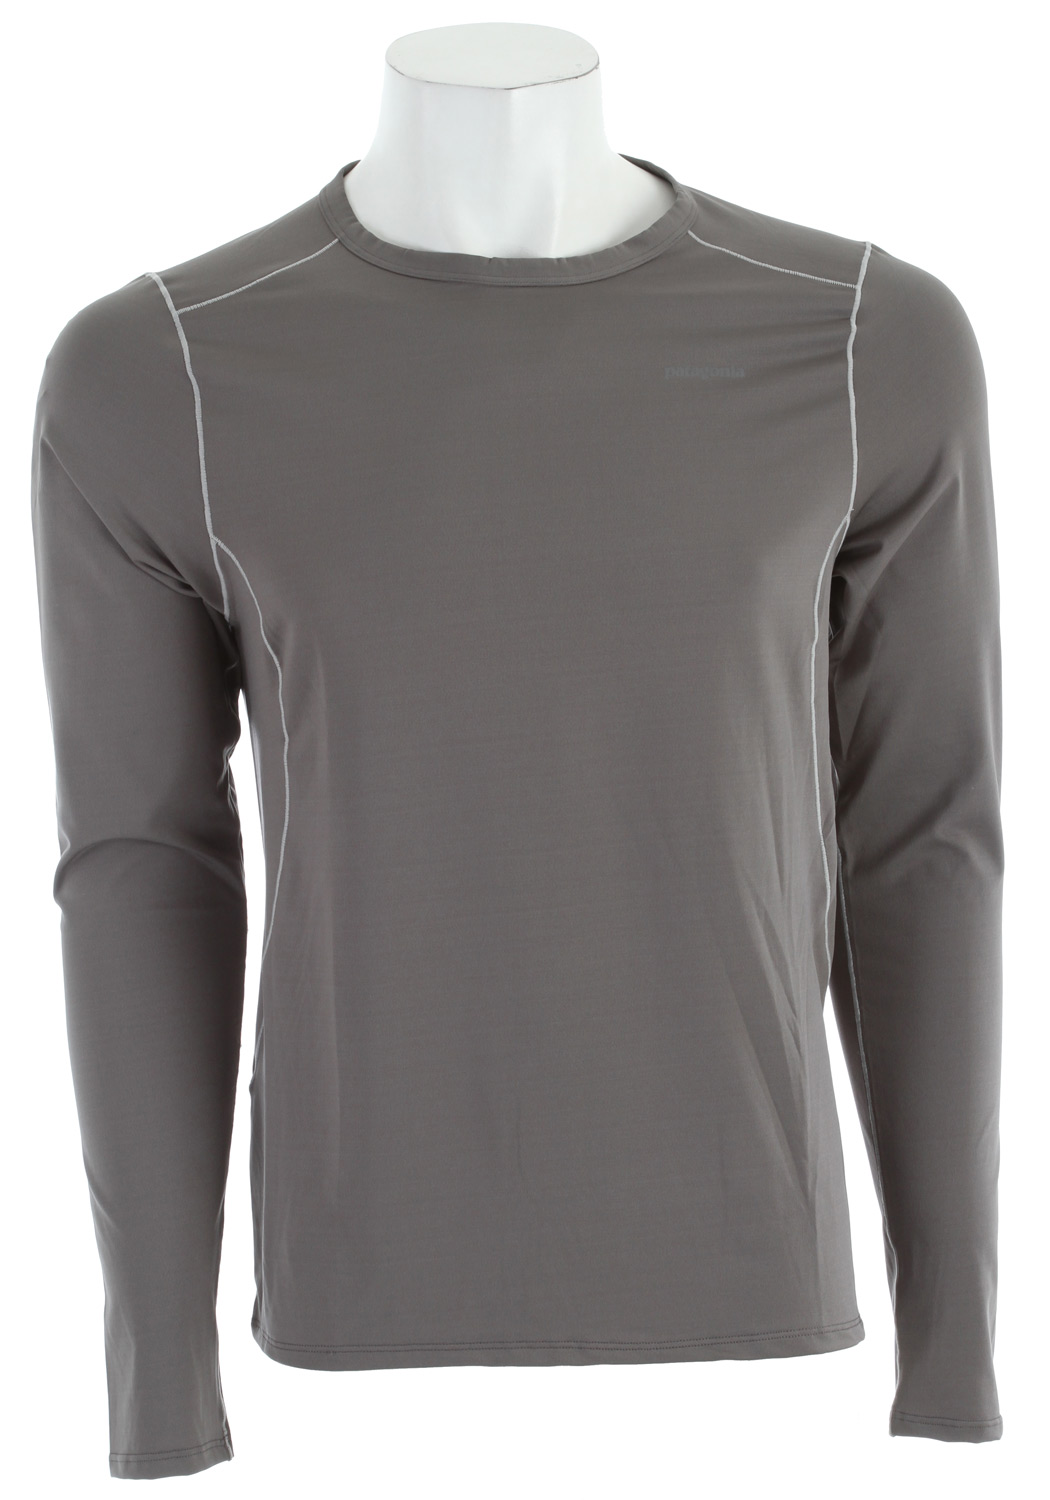 Our stretchiest synthetic baselayer keeps you dry and cool with 50+ UPF sun protectionKey Features of the Patagonia Capilene 1 Silkweight Stretch Crew Baselayer Top: Polyester/spandex jersey blend for superior stretch and moisture management Durable smooth jersey face is comfortable against the skin Self-fabric crew neck Seams offset for maximum mobility with minimum chafe Reflective heat-transfer logo on front and center back Machine-wash cold, tumble dry at low temperature Slim fit (6.8 oz) 192 g fabric: 5.1-oz 84% polyester/16% spandex jersey with Gladiodor odor control for the garment and 50+ UPF sun protection - $24.95